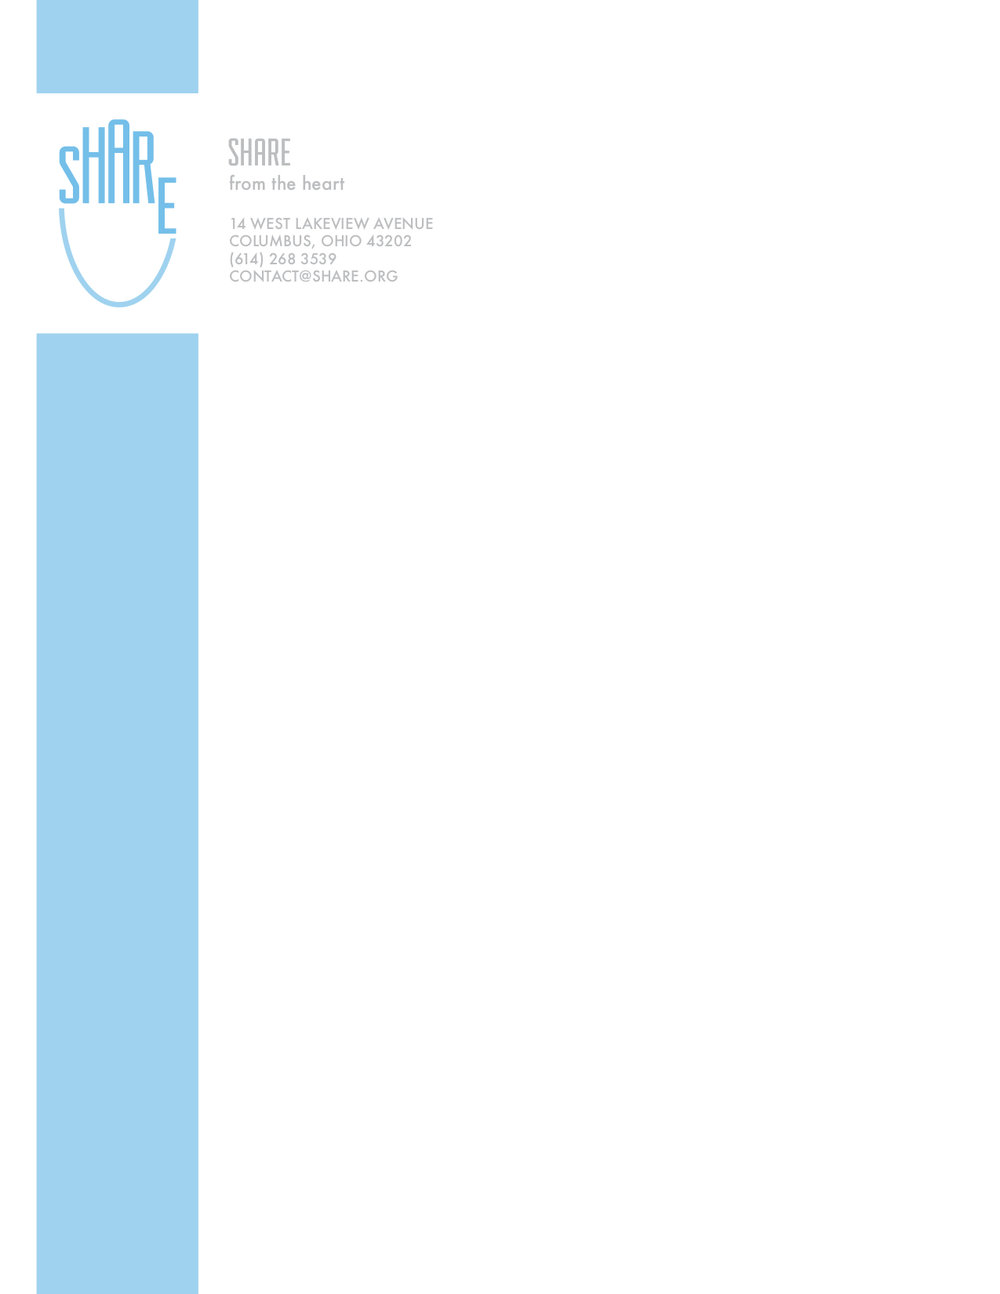 School-Share-Letterhead.jpg